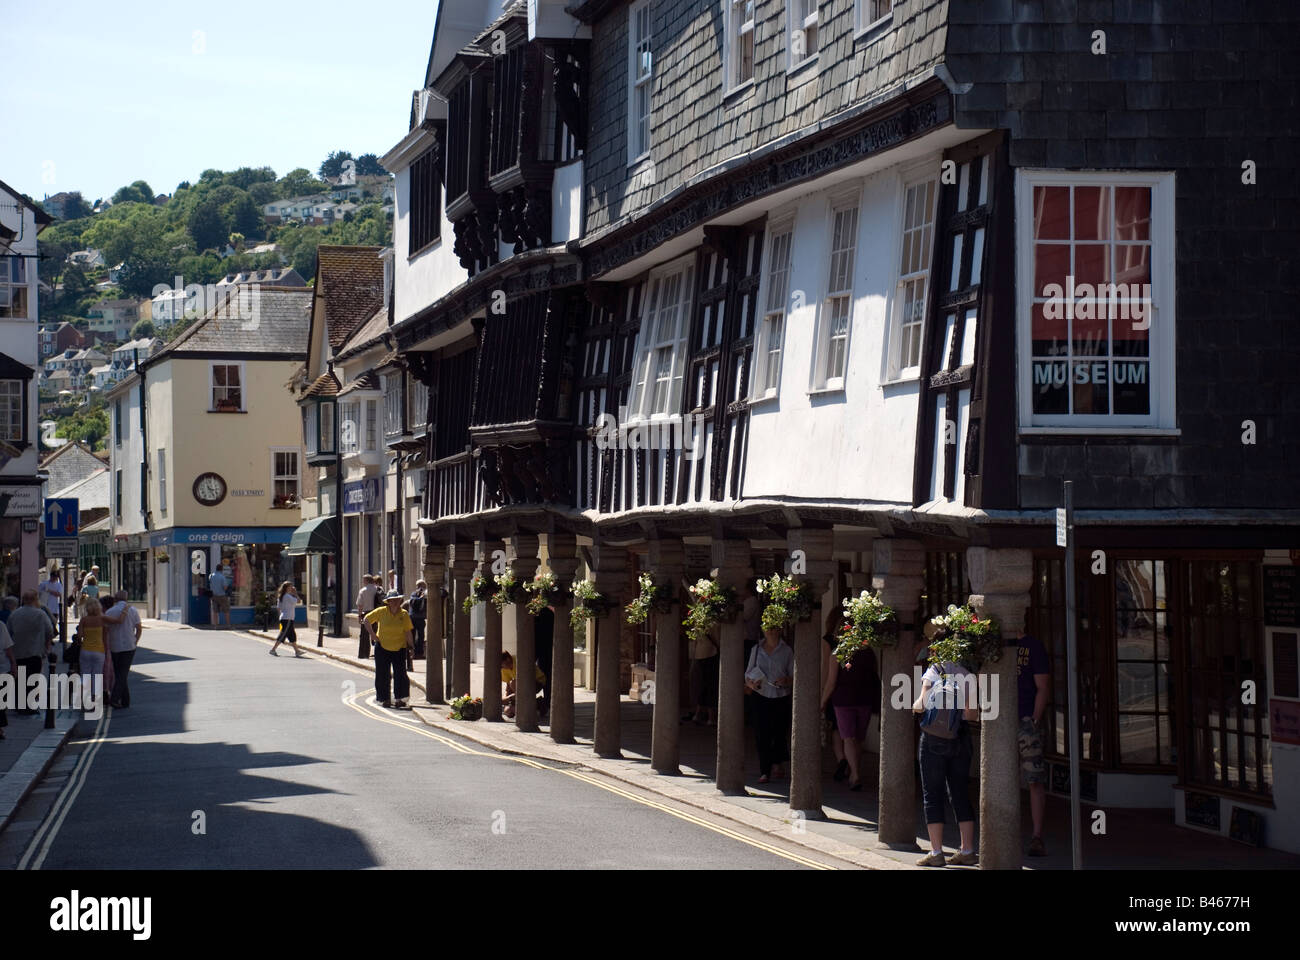 Tudor buildings in Dartmouth,Dartmouth Museum is a museum housed in an atmospheric old merchant's house, built - Stock Image